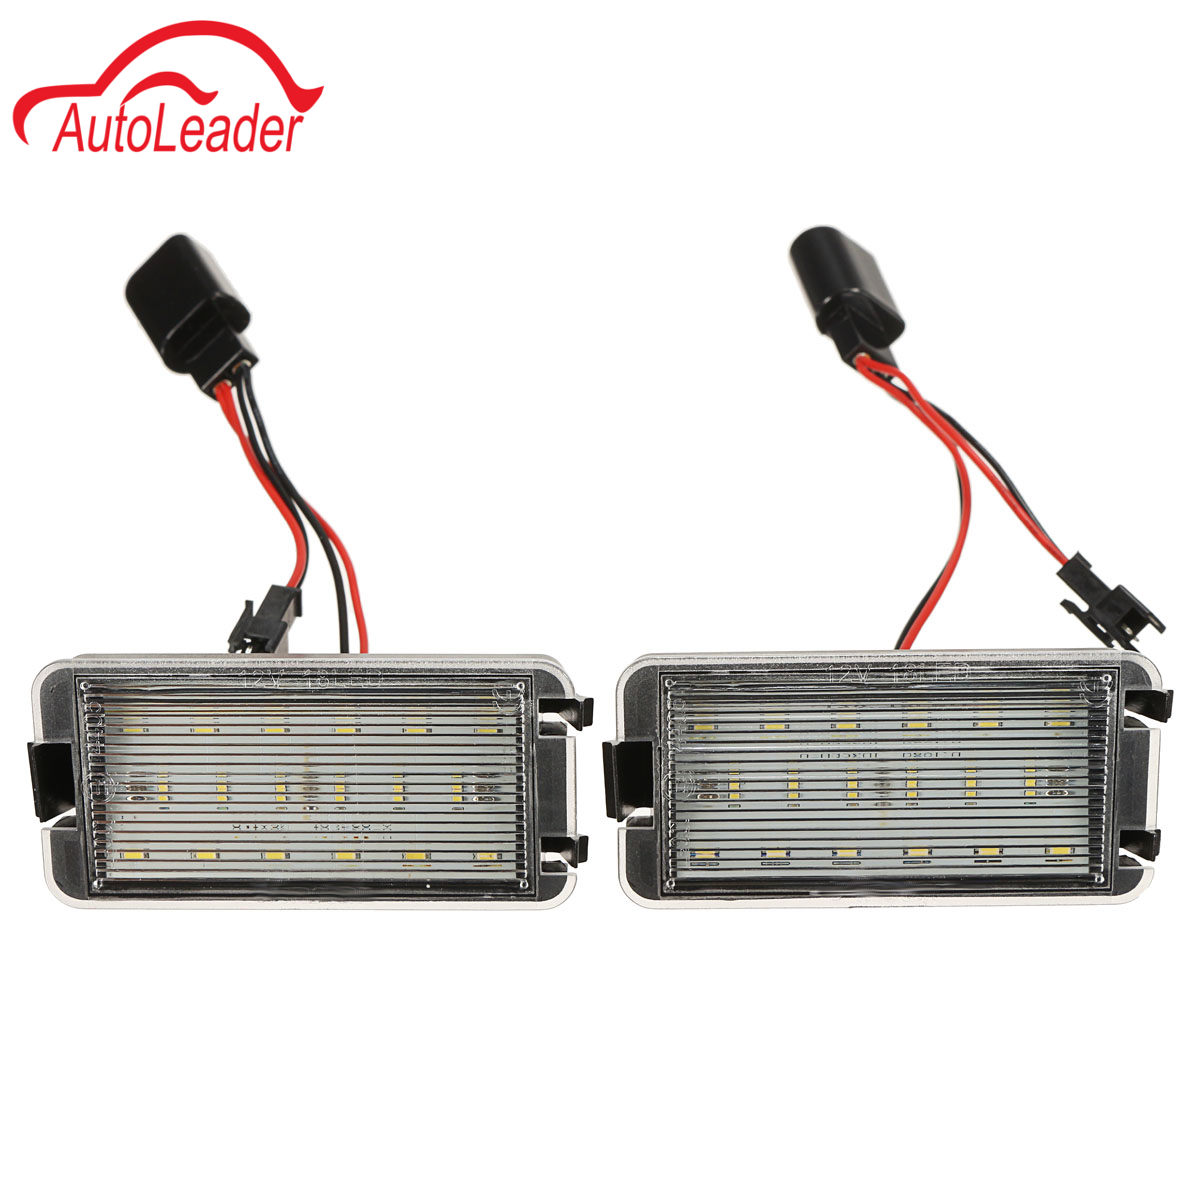 2pcs LED Car Tail Number License Plate Lights Lamps NO error For Seat Ibiza 6L ab for Seat CORDOBA/LEON/TOLEDO xuankun off road motorcycle modified led taillights turn lights brake lights license plate tail lighthouse